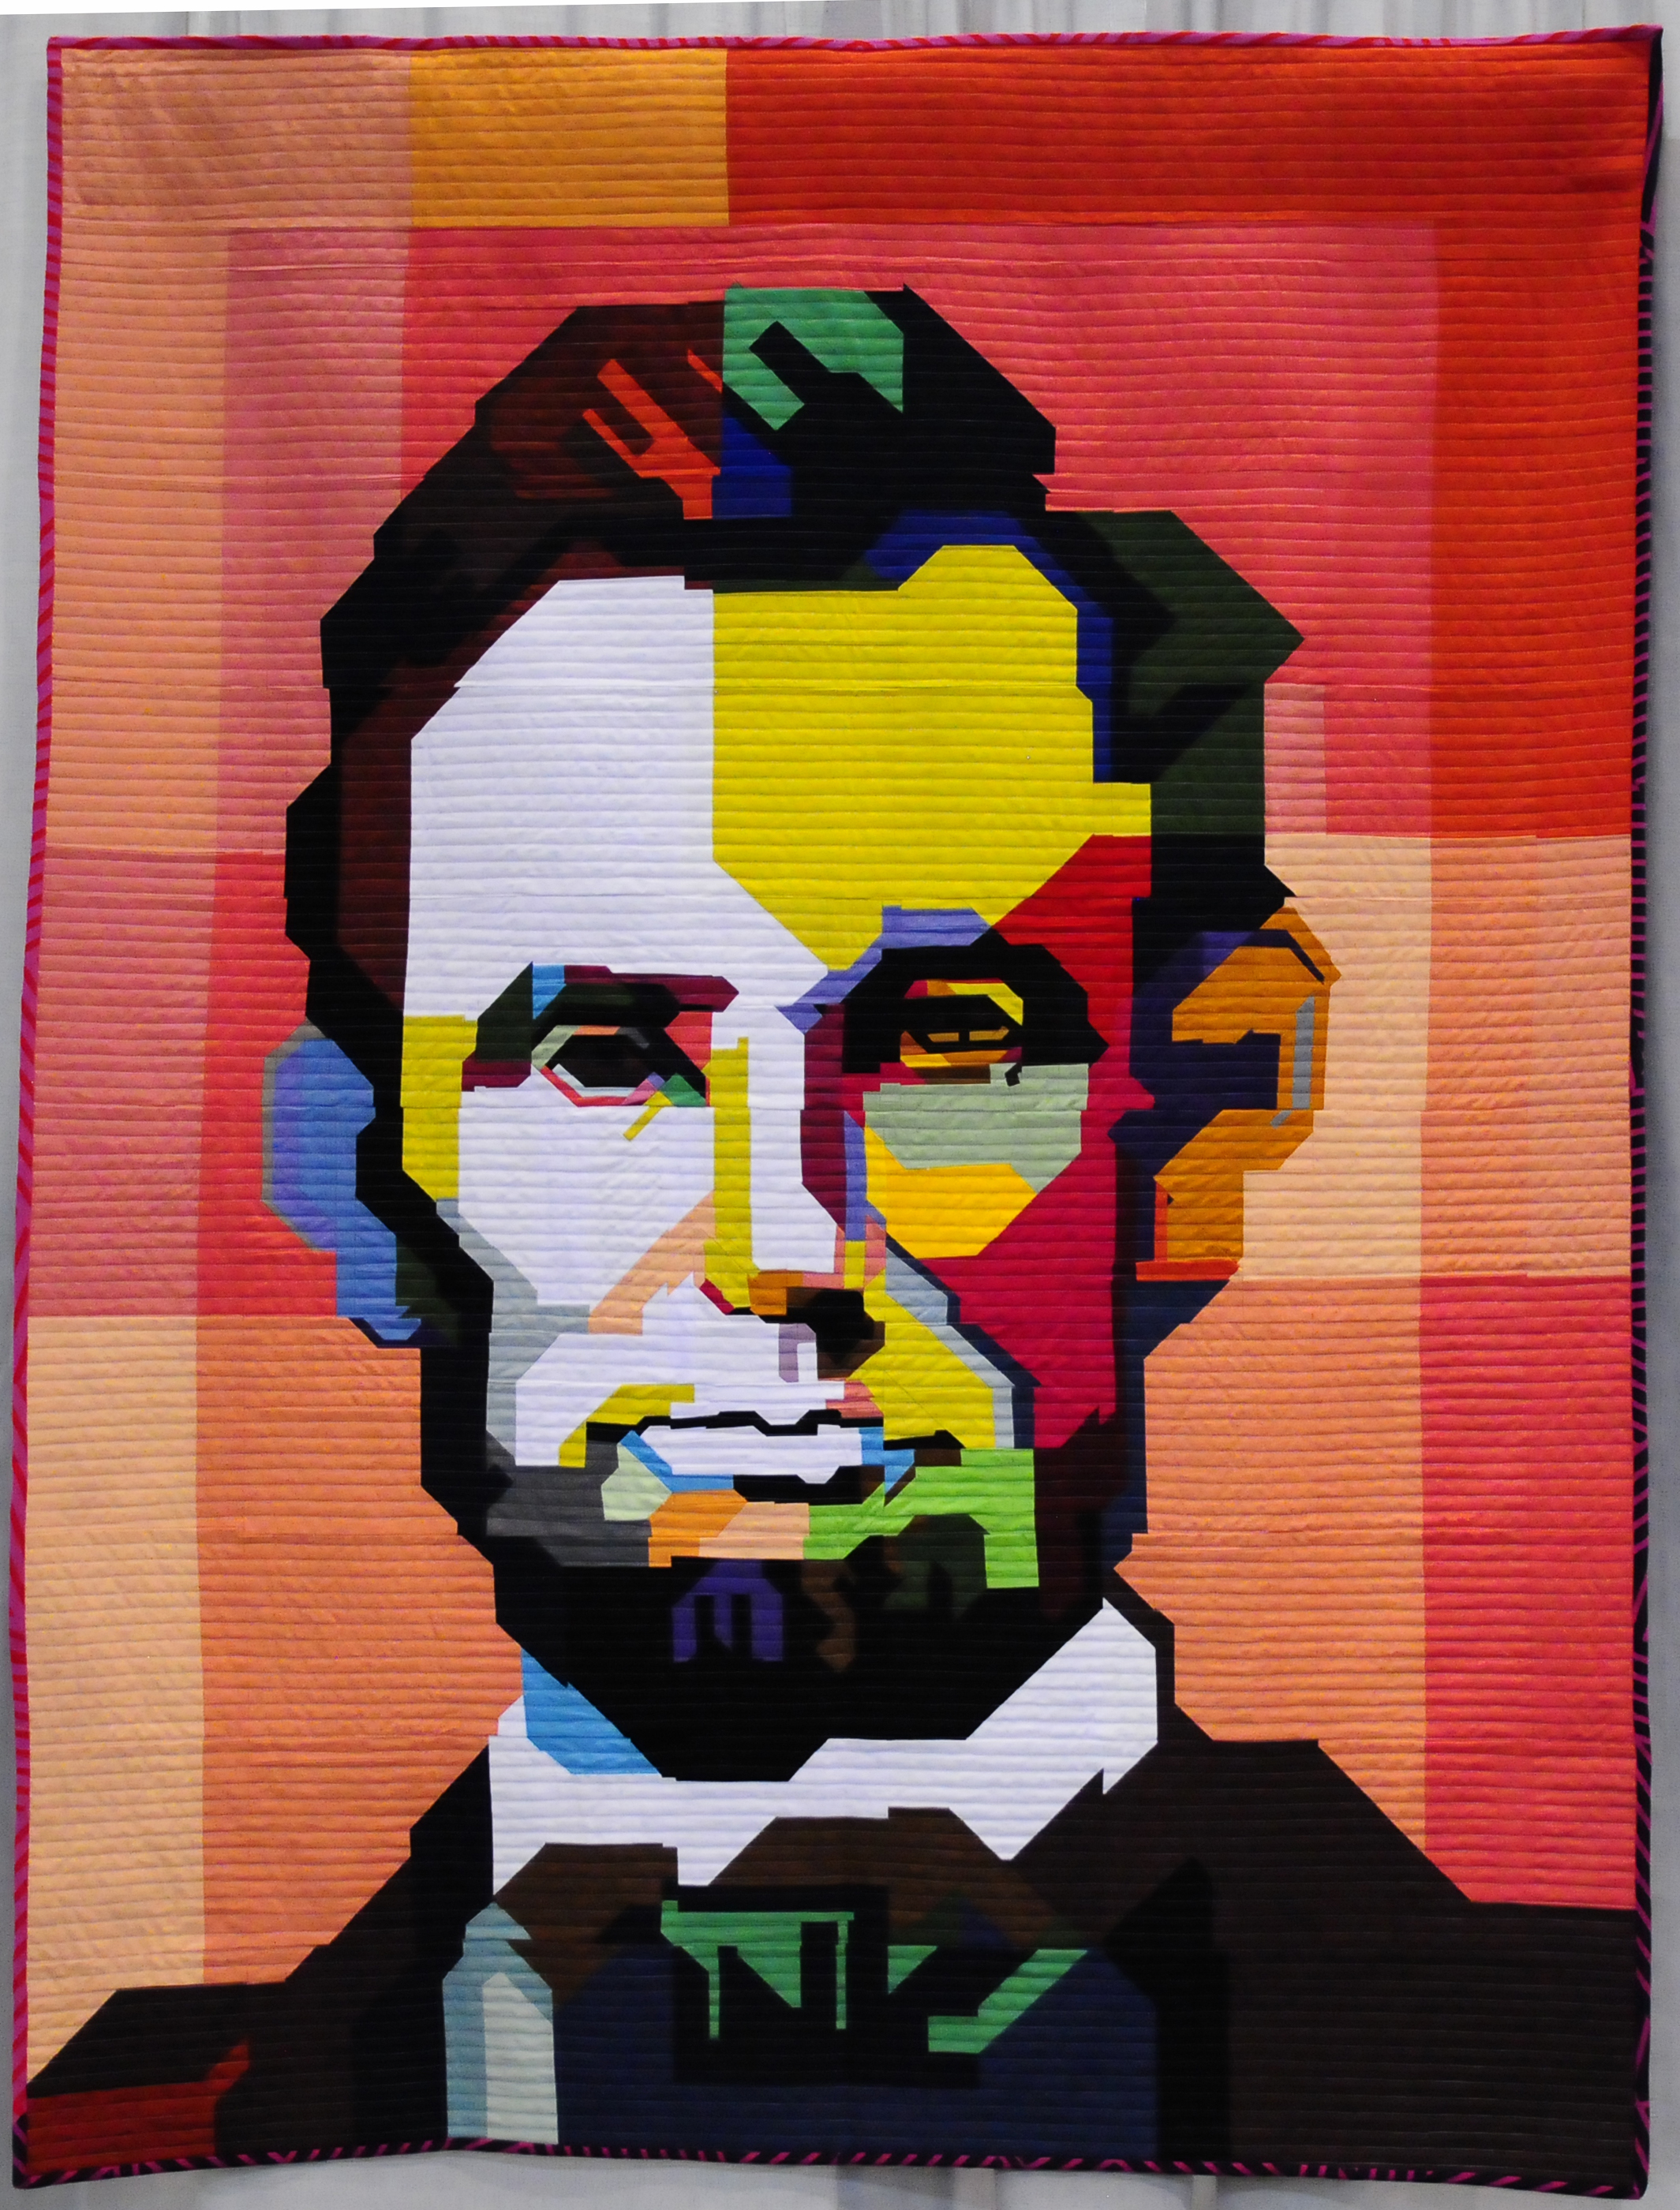 Lincoln by Kim Soper ( @lelandavestudios ), First Place Improvisation, People's Choice